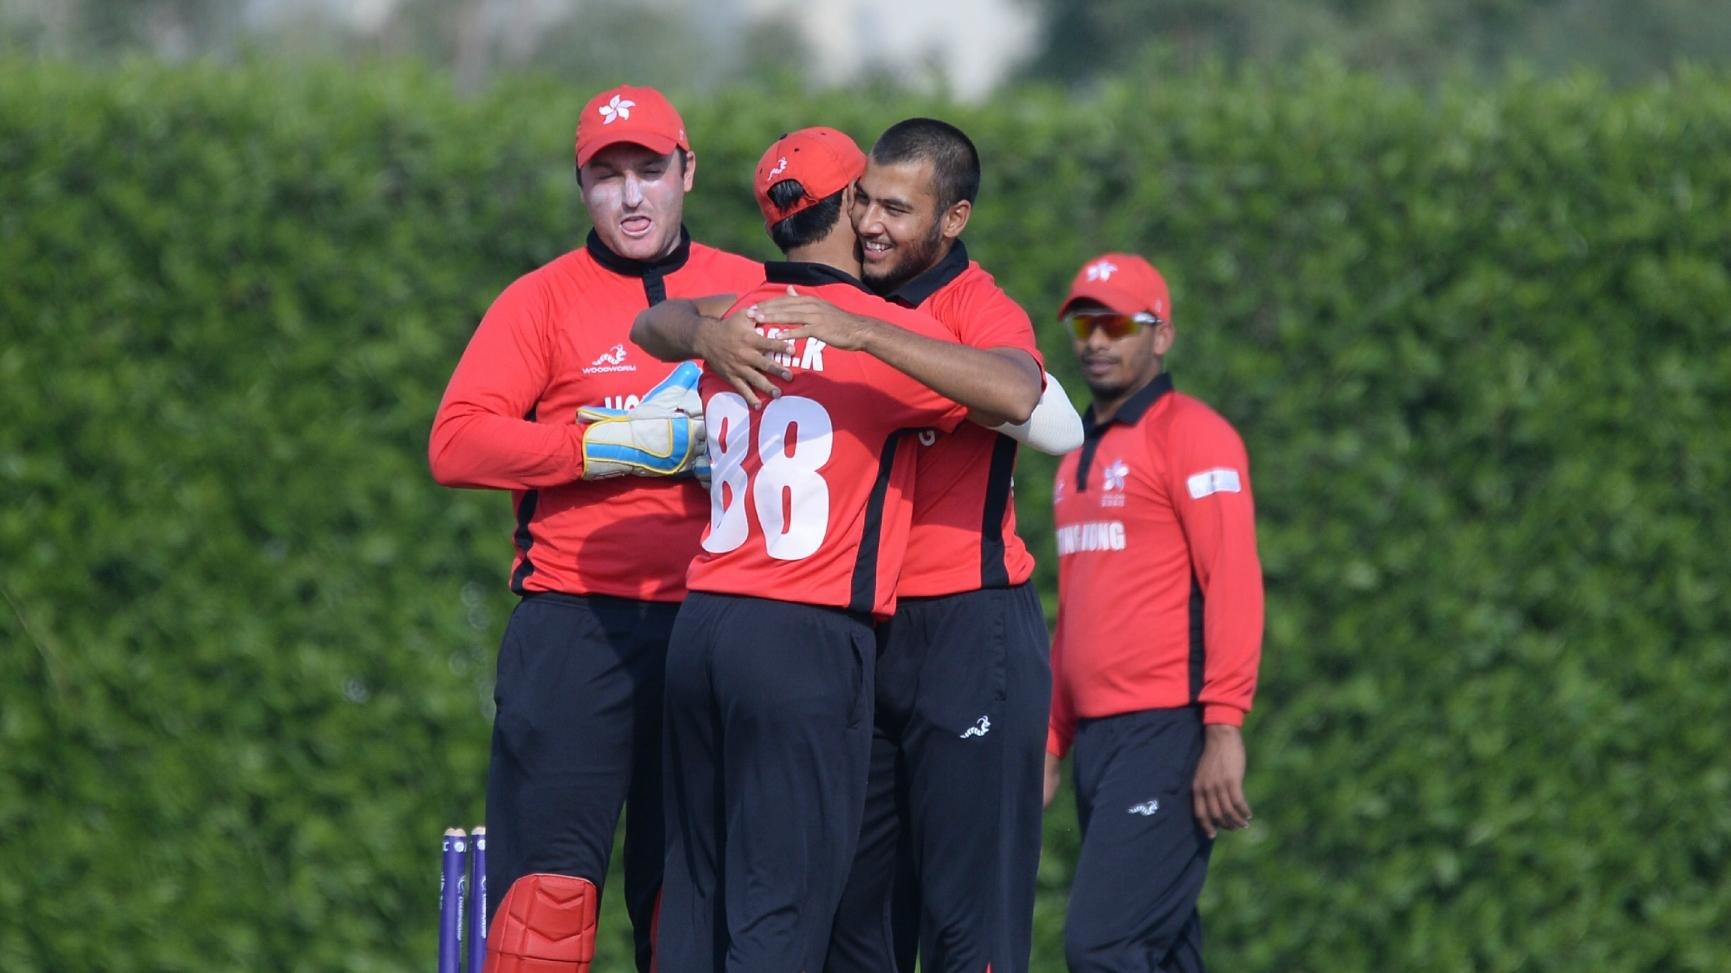 Hong Kong, PNG have the confidence of individual performances